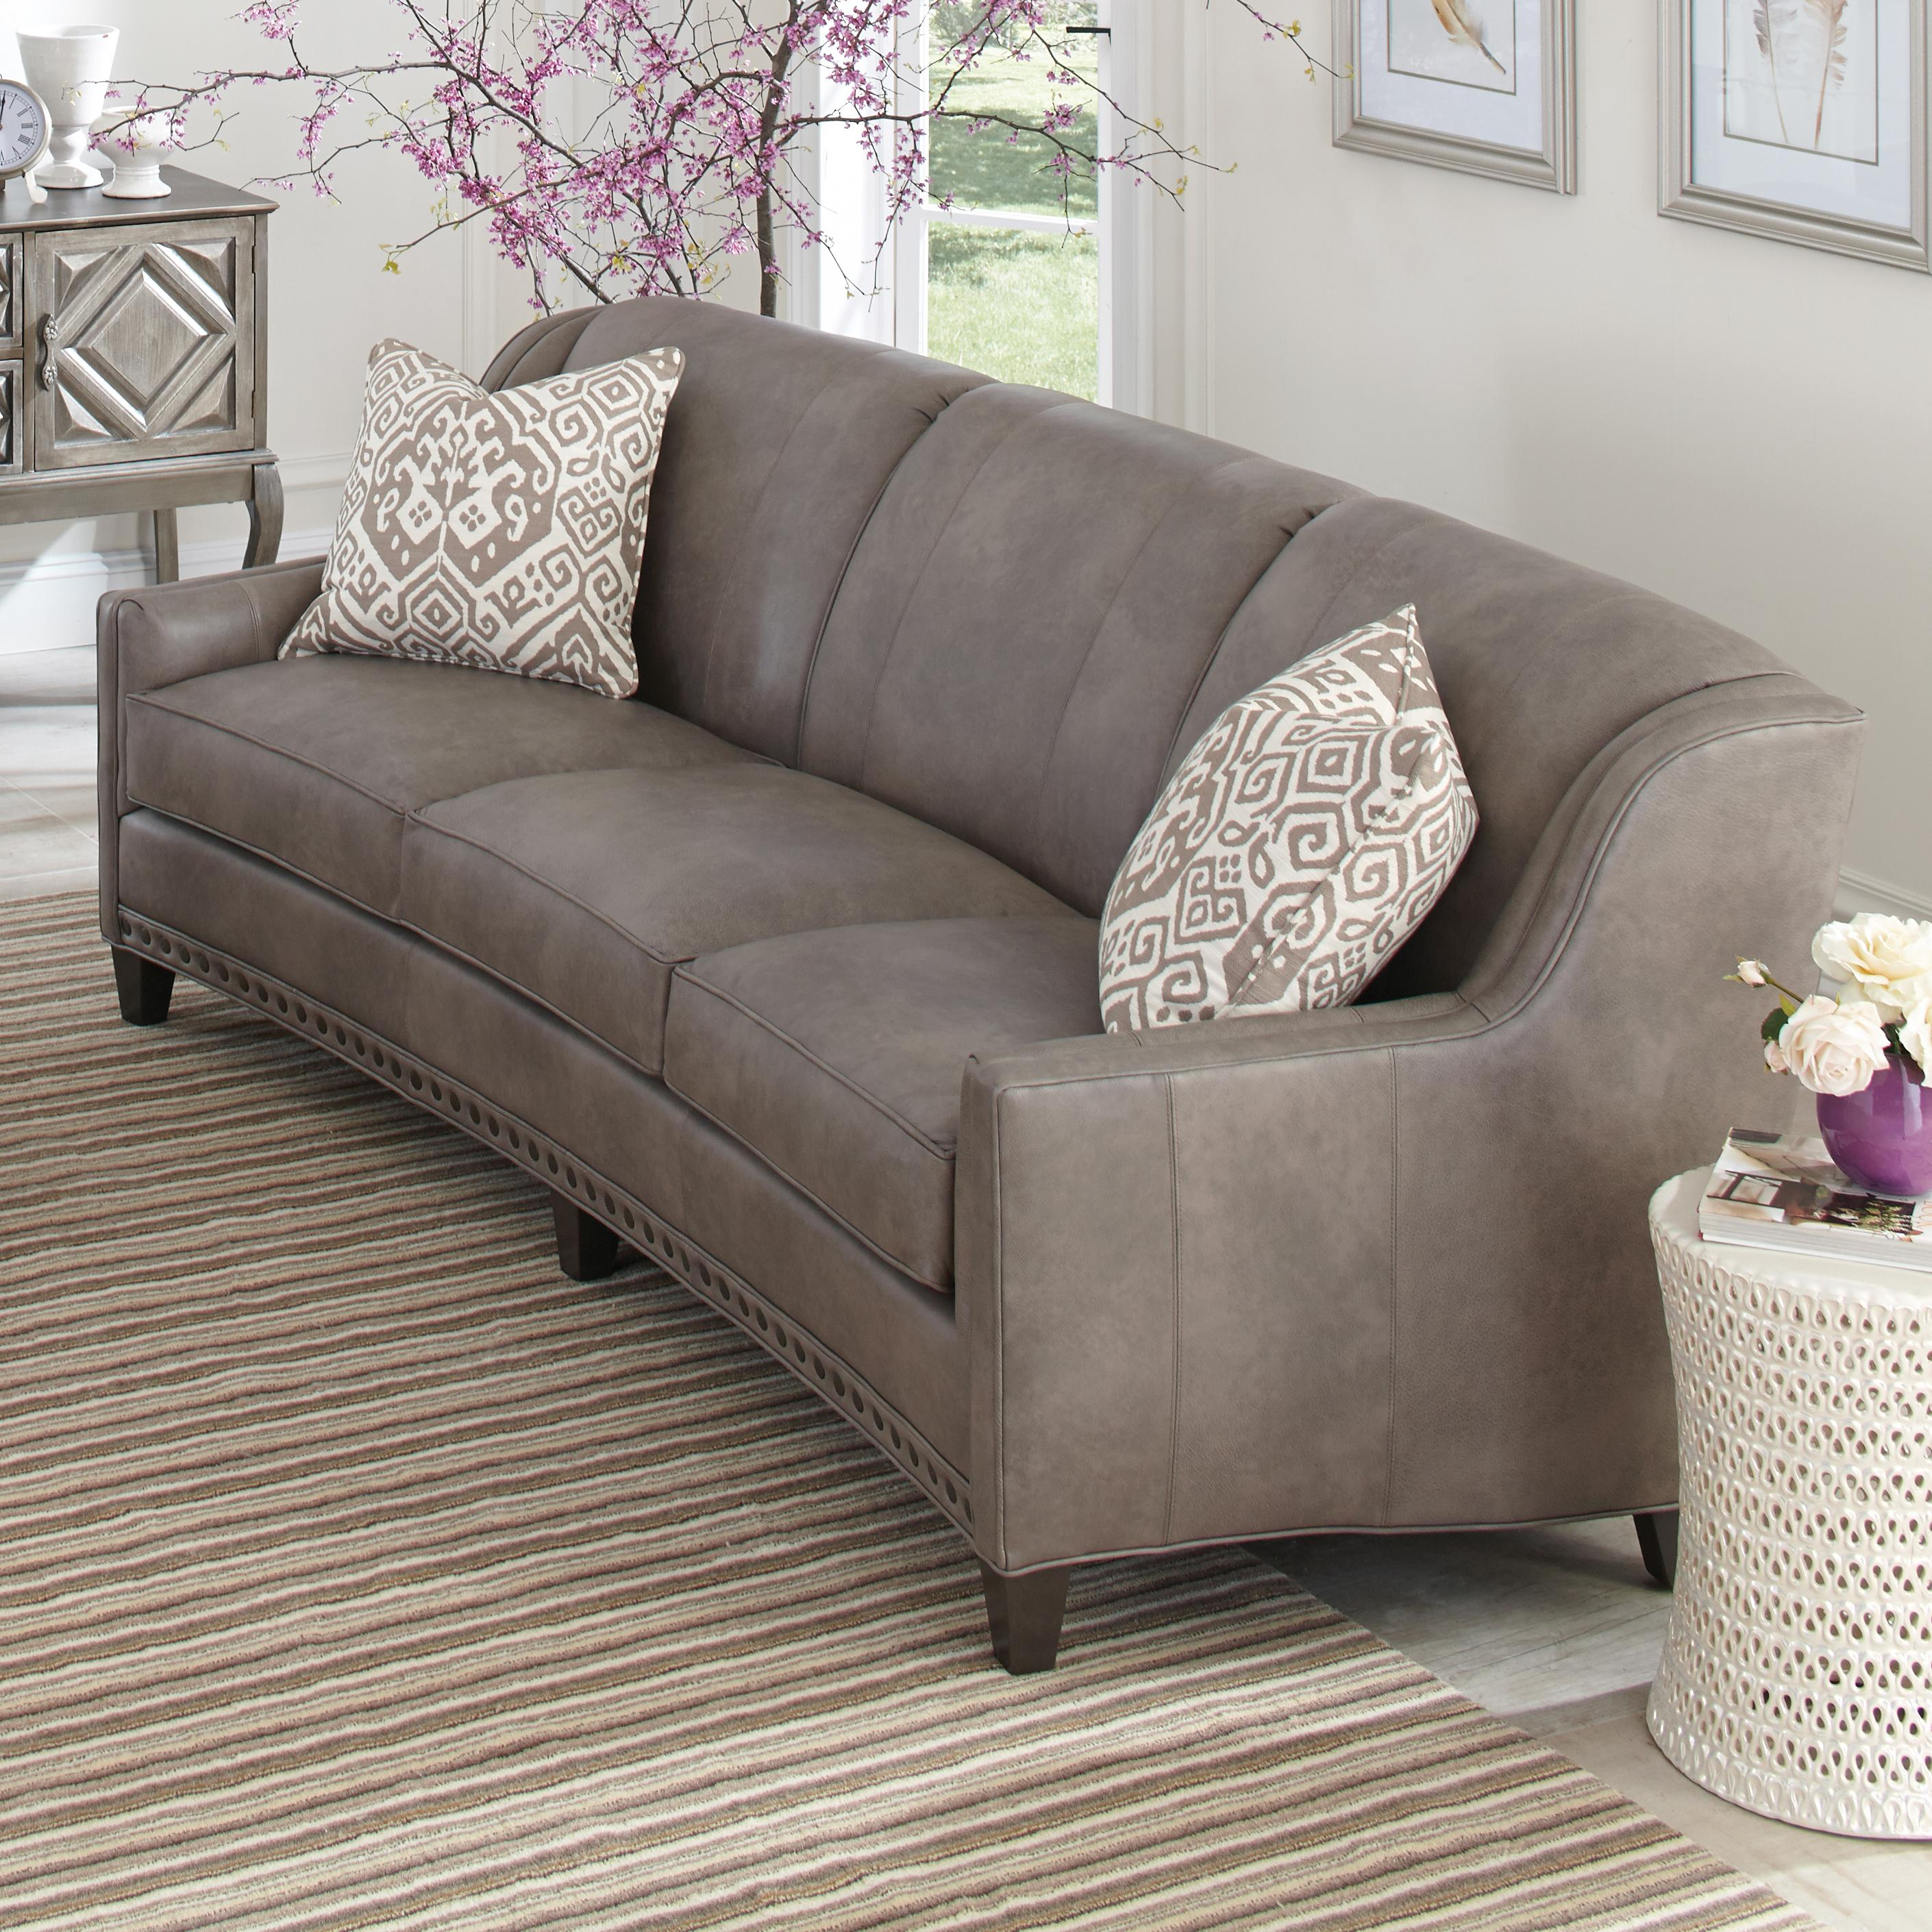 Couches Or Sofa: Slightly Curved Sofa With Sloping Track Arms And Nail Head